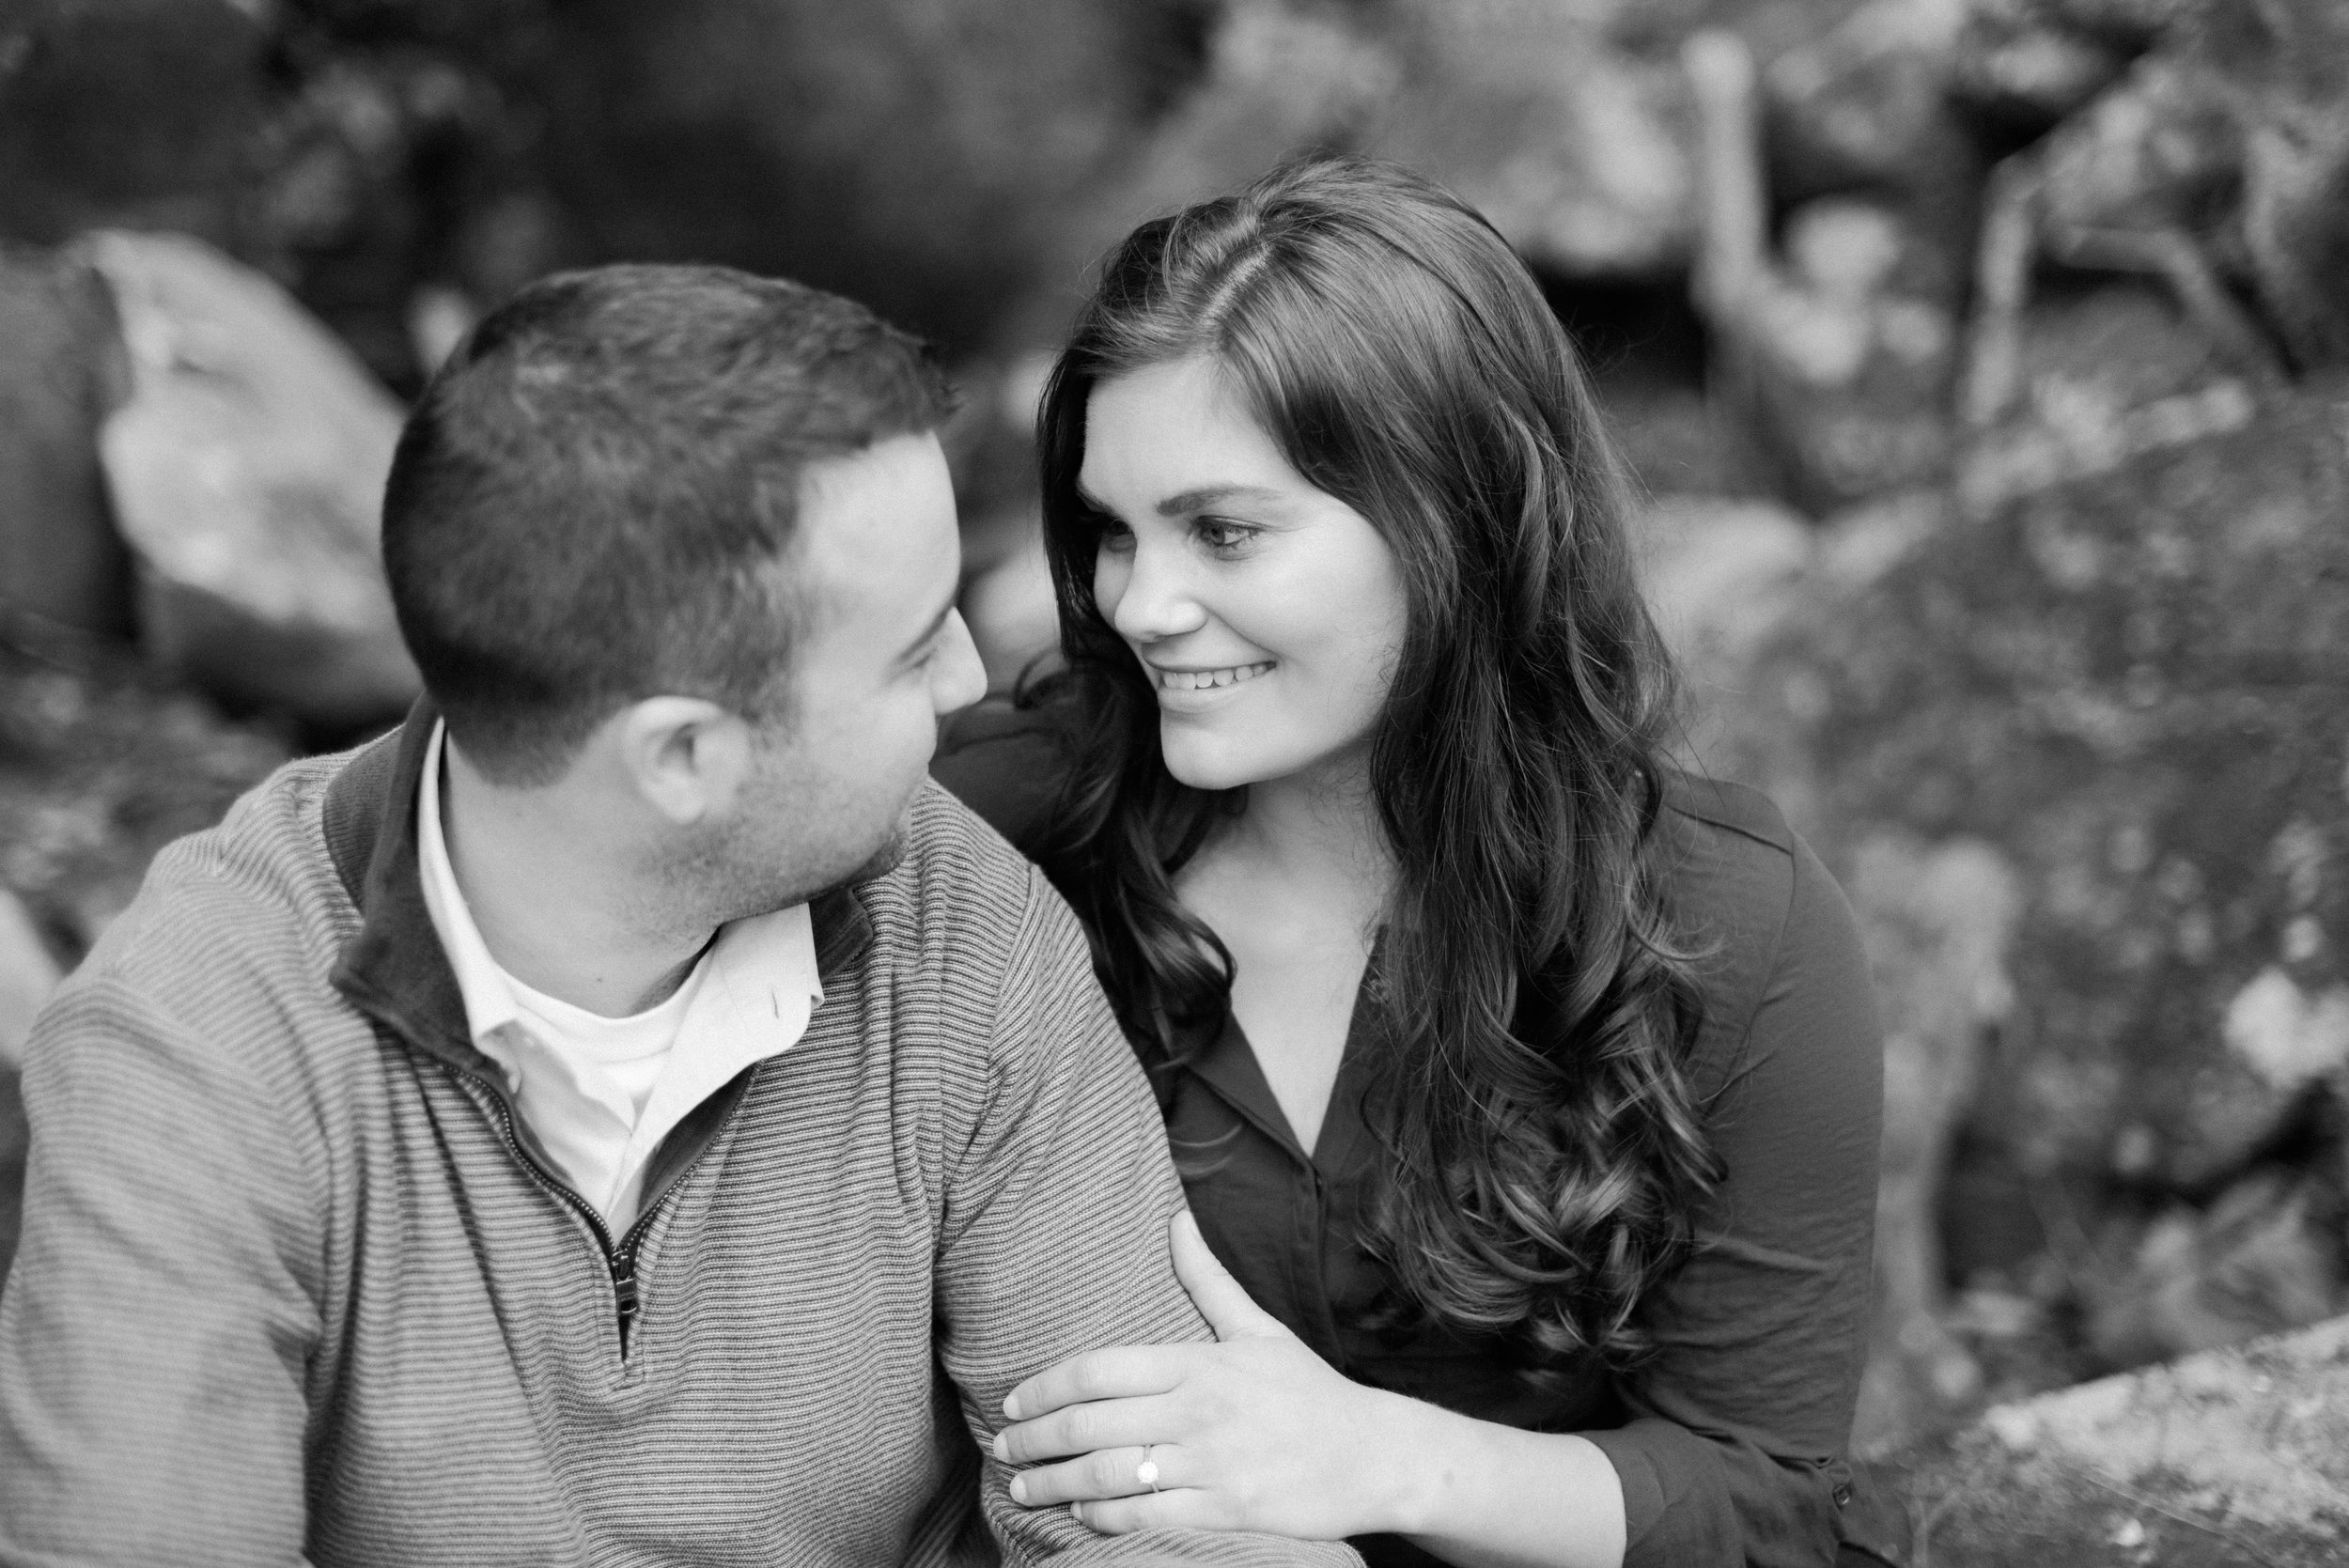 Engagement Sessions in Amherst MA